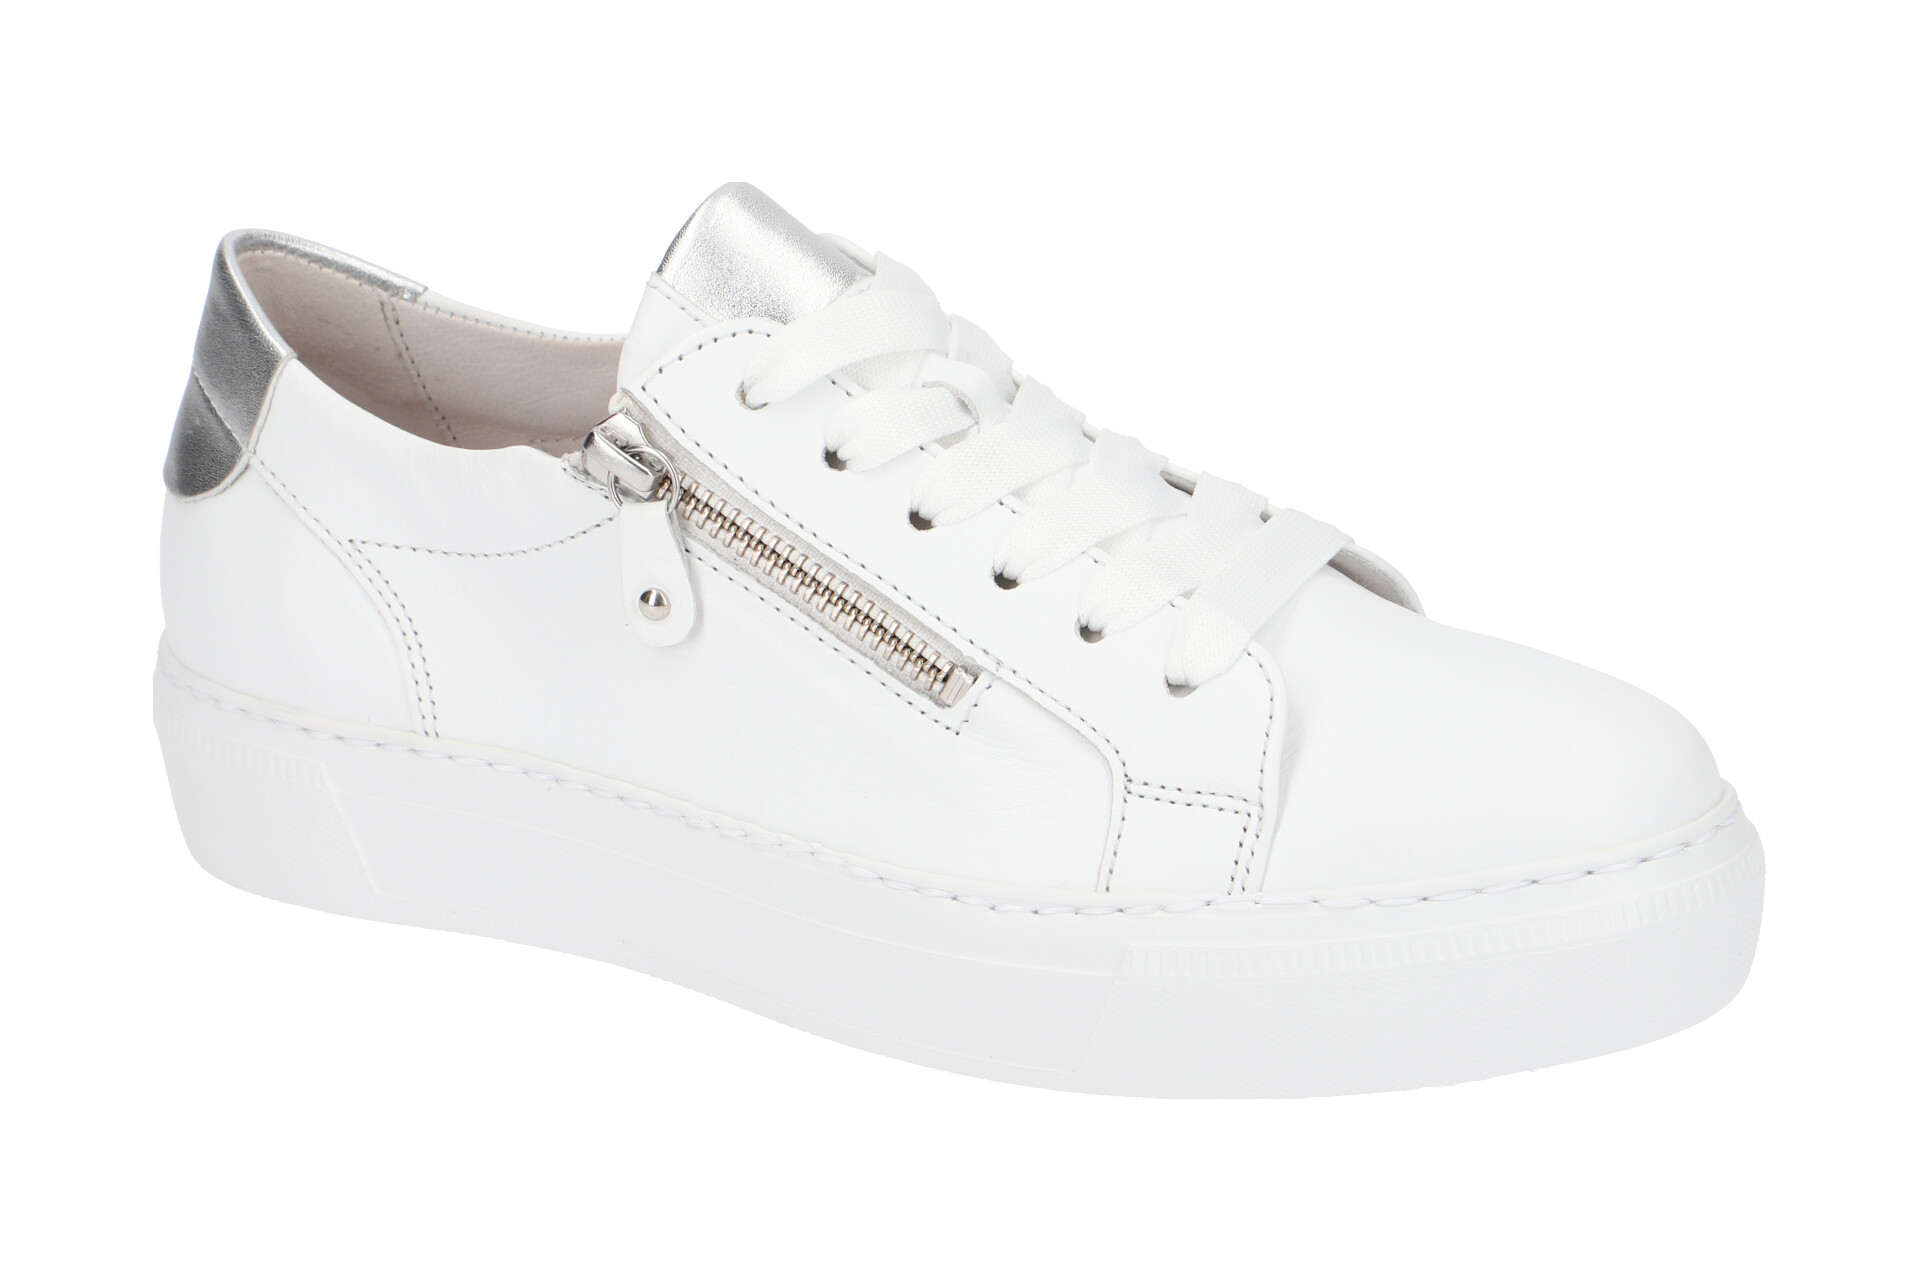 save off c6f3f 5425c Gabor Schuhe weiß silber Sneakers 23.314.21